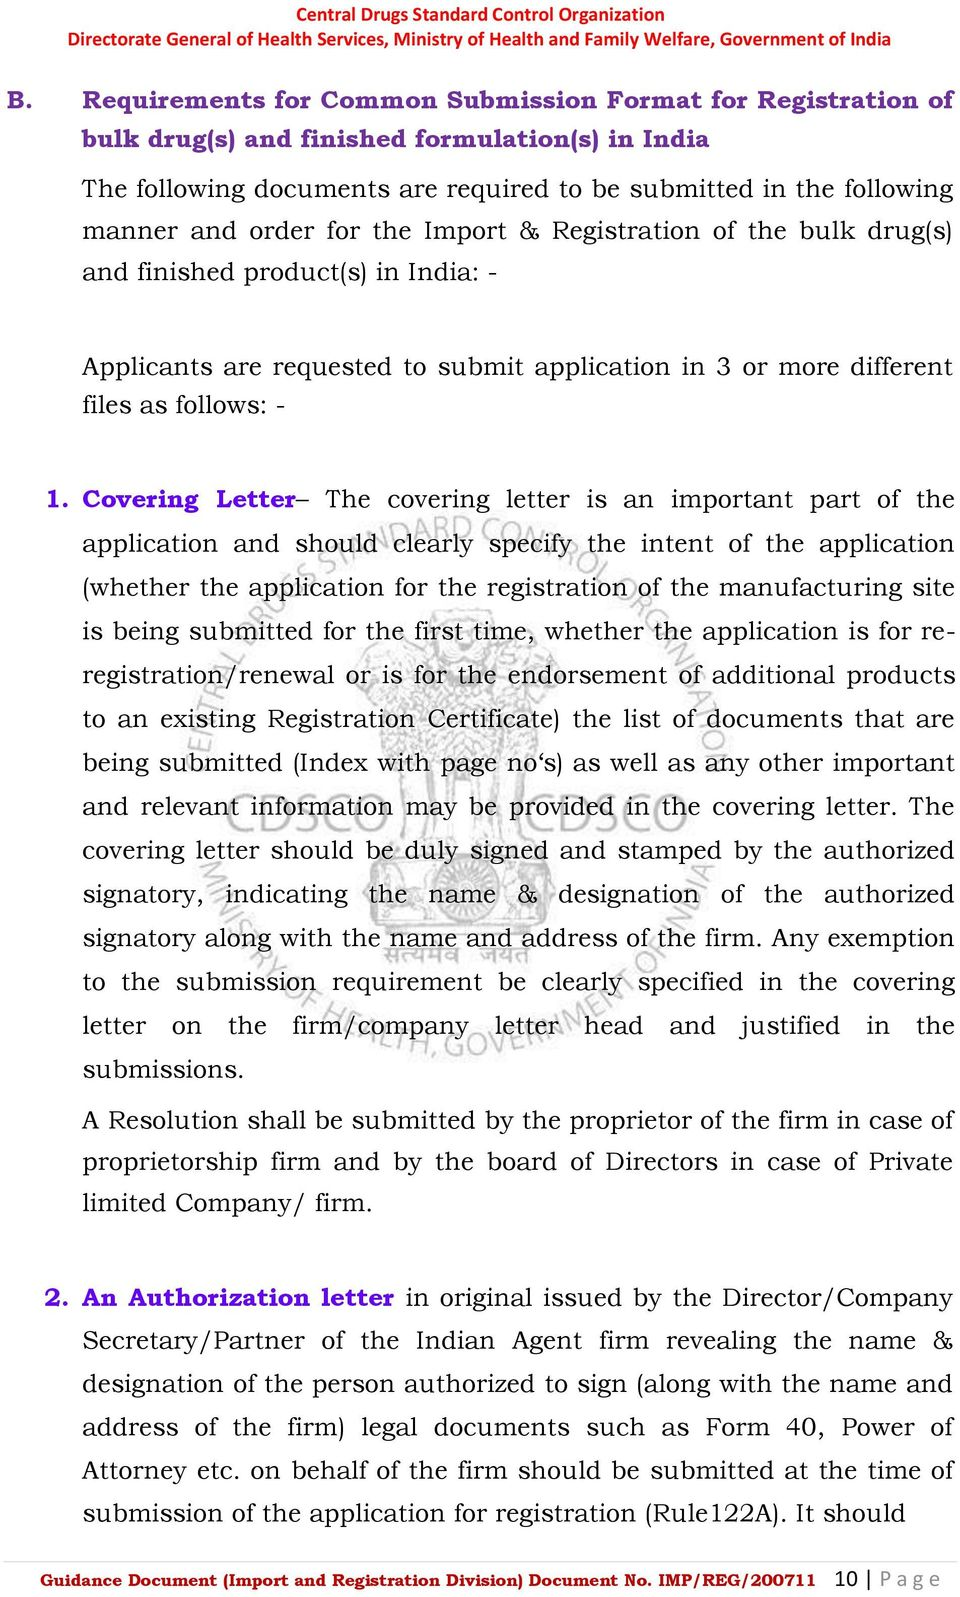 Covering Letter The covering letter is an important part of the application and should clearly specify the intent of the application (whether the application for the registration of the manufacturing